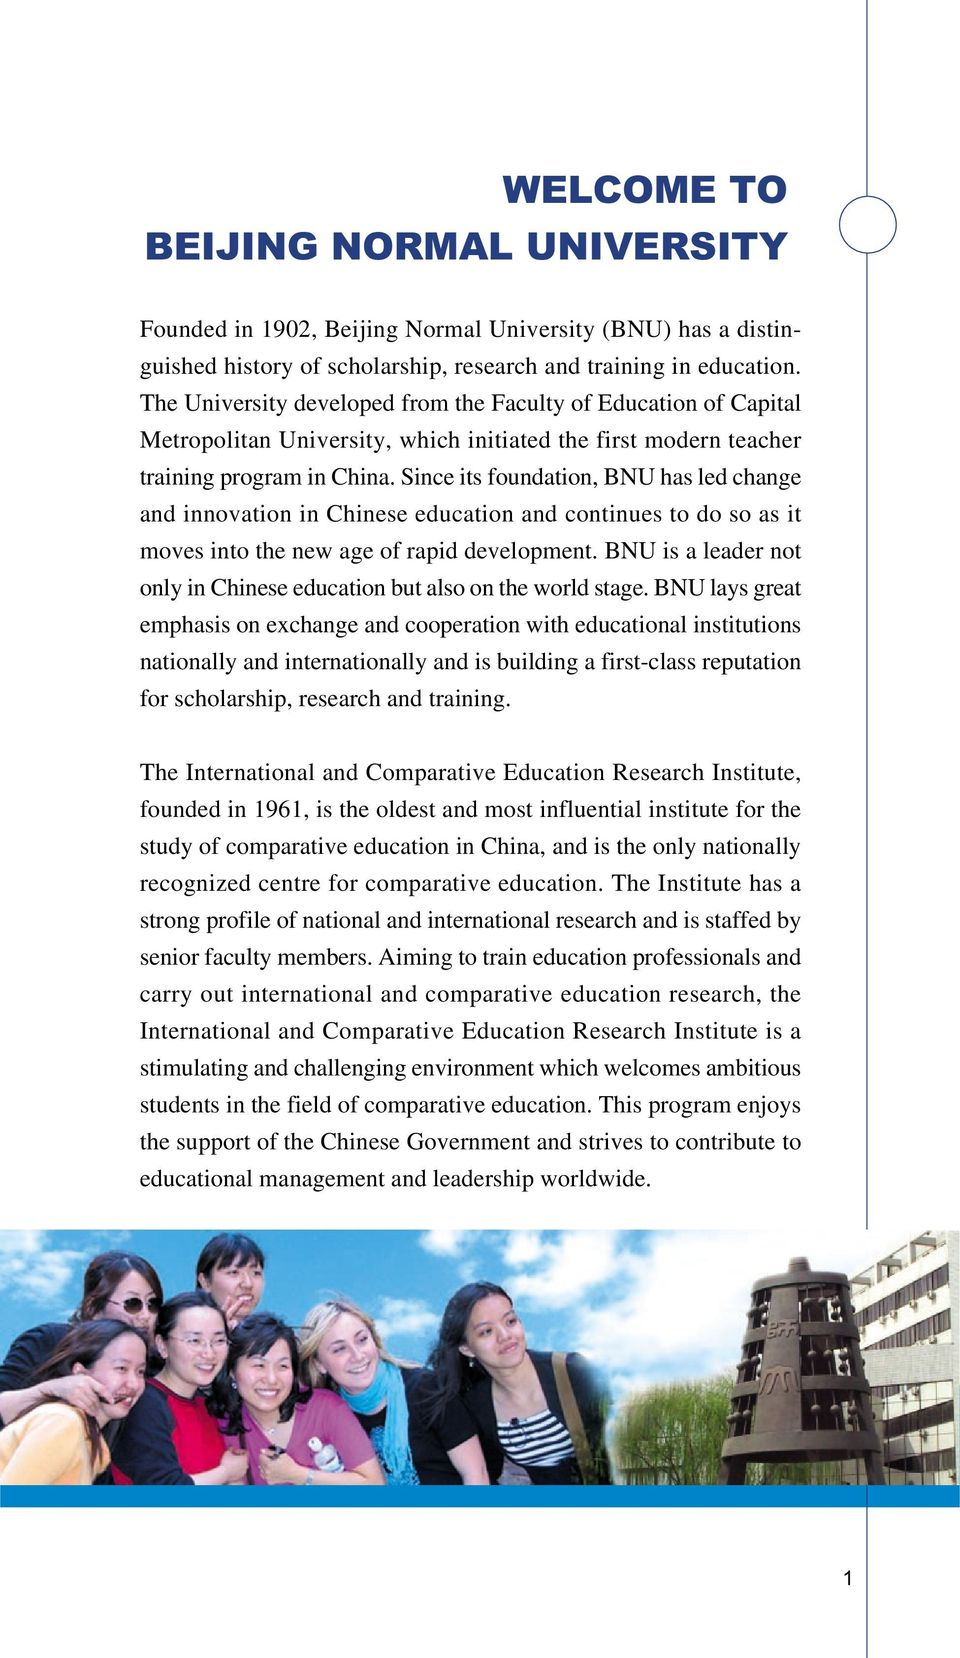 Since its foundation, BNU has led change and innovation in Chinese education and continues to do so as it moves into the new age of rapid development.